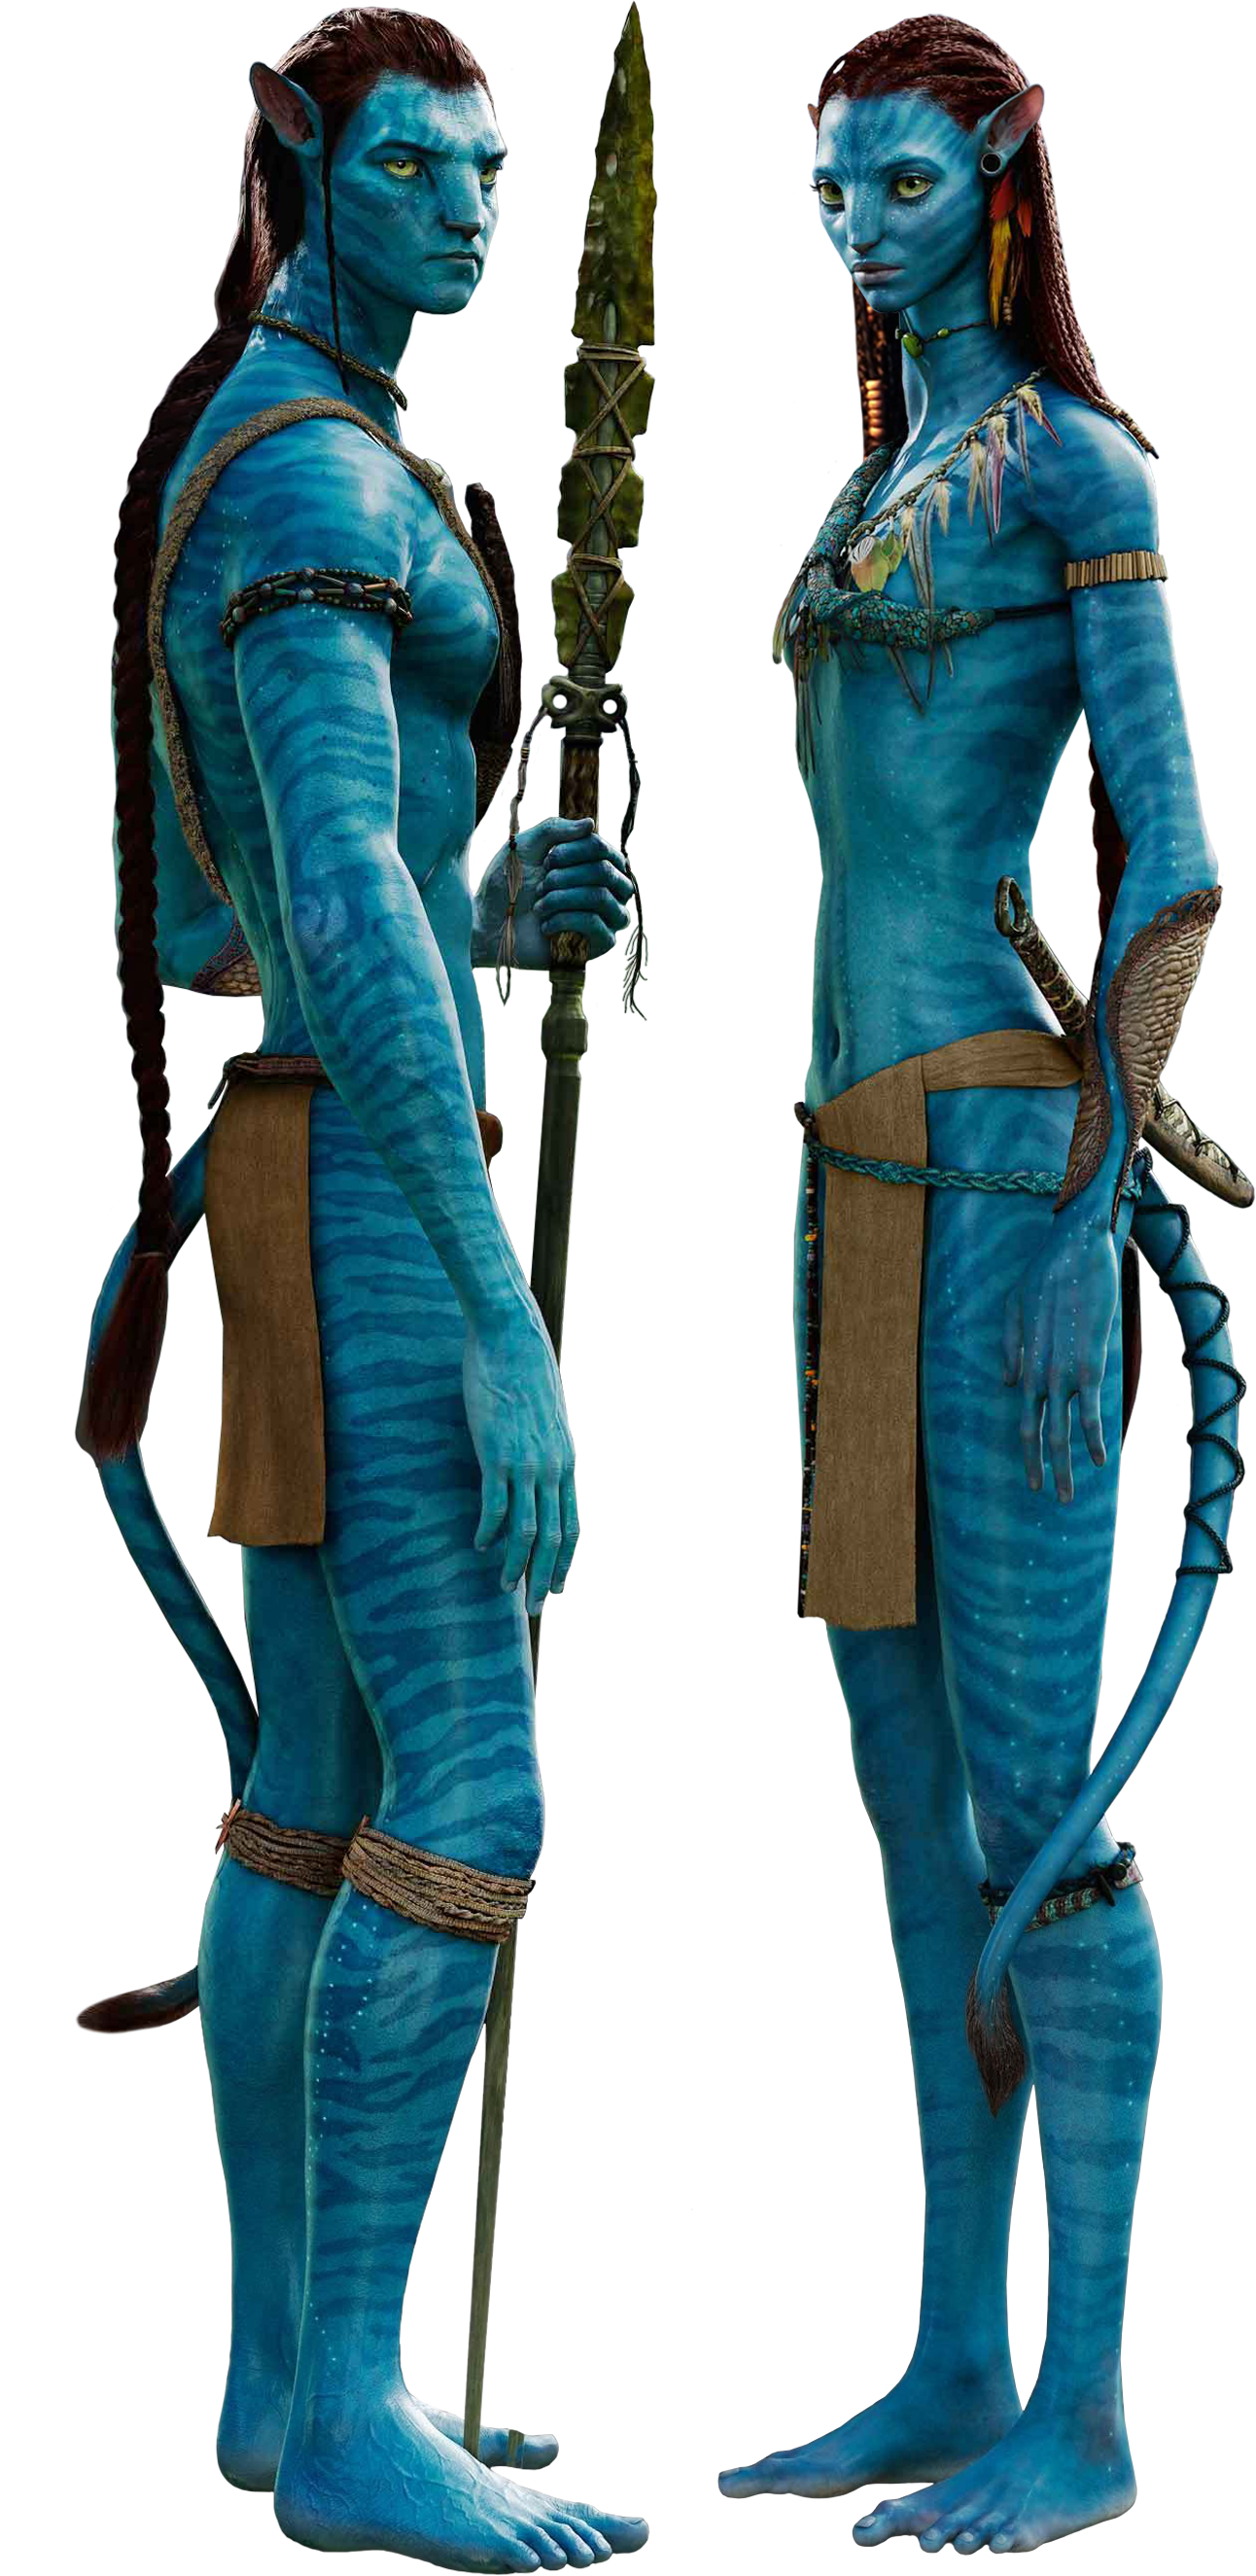 Avatar movie png. Image purepng free transparent